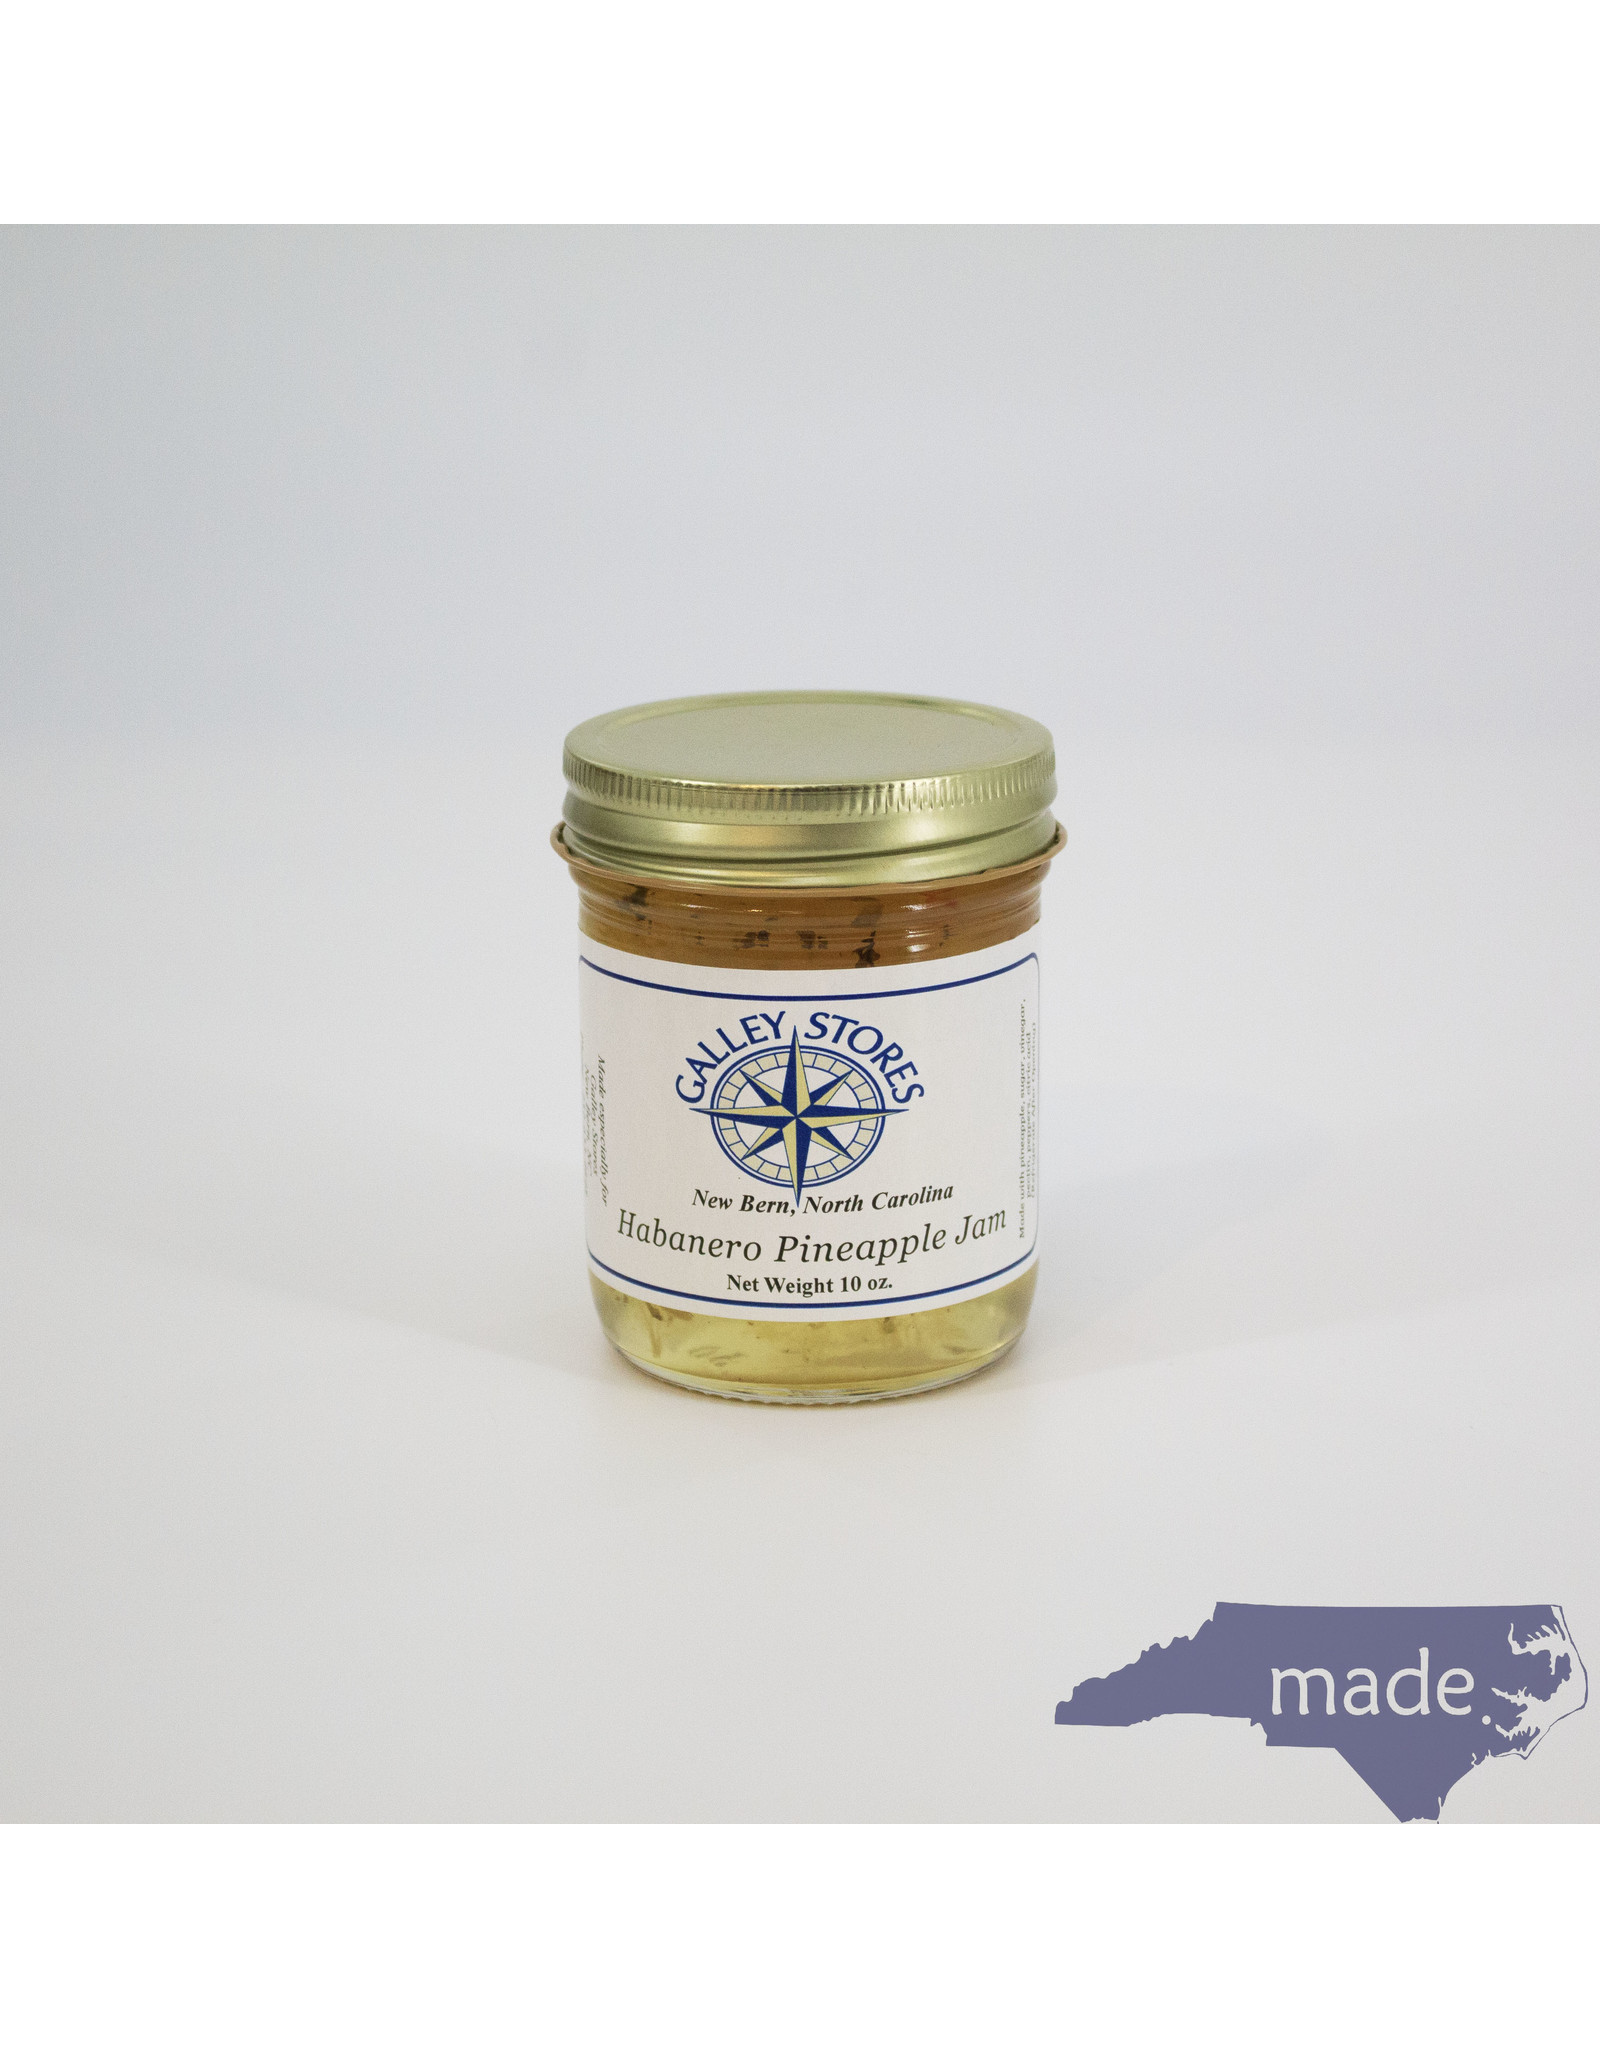 Galley Stores Habanero Pineapple Jam 10 oz. - Galley Stores